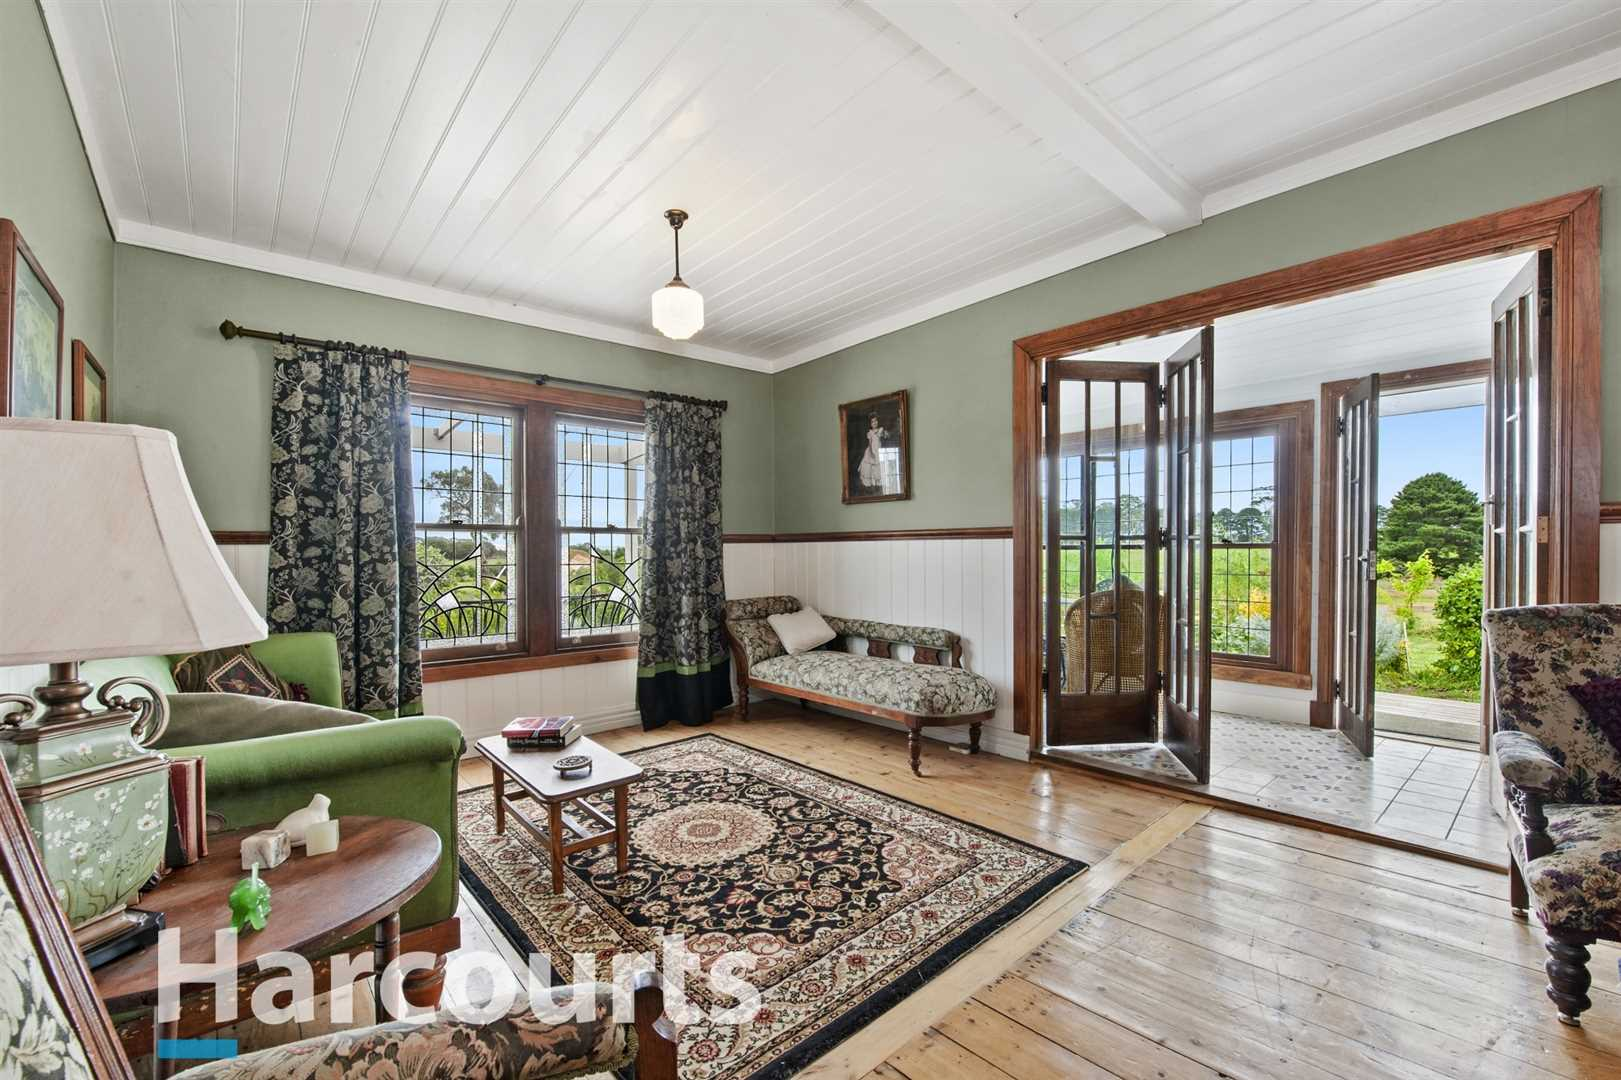 Charming Cottage, Beautiful Gardens & 15 Picturesque Acres